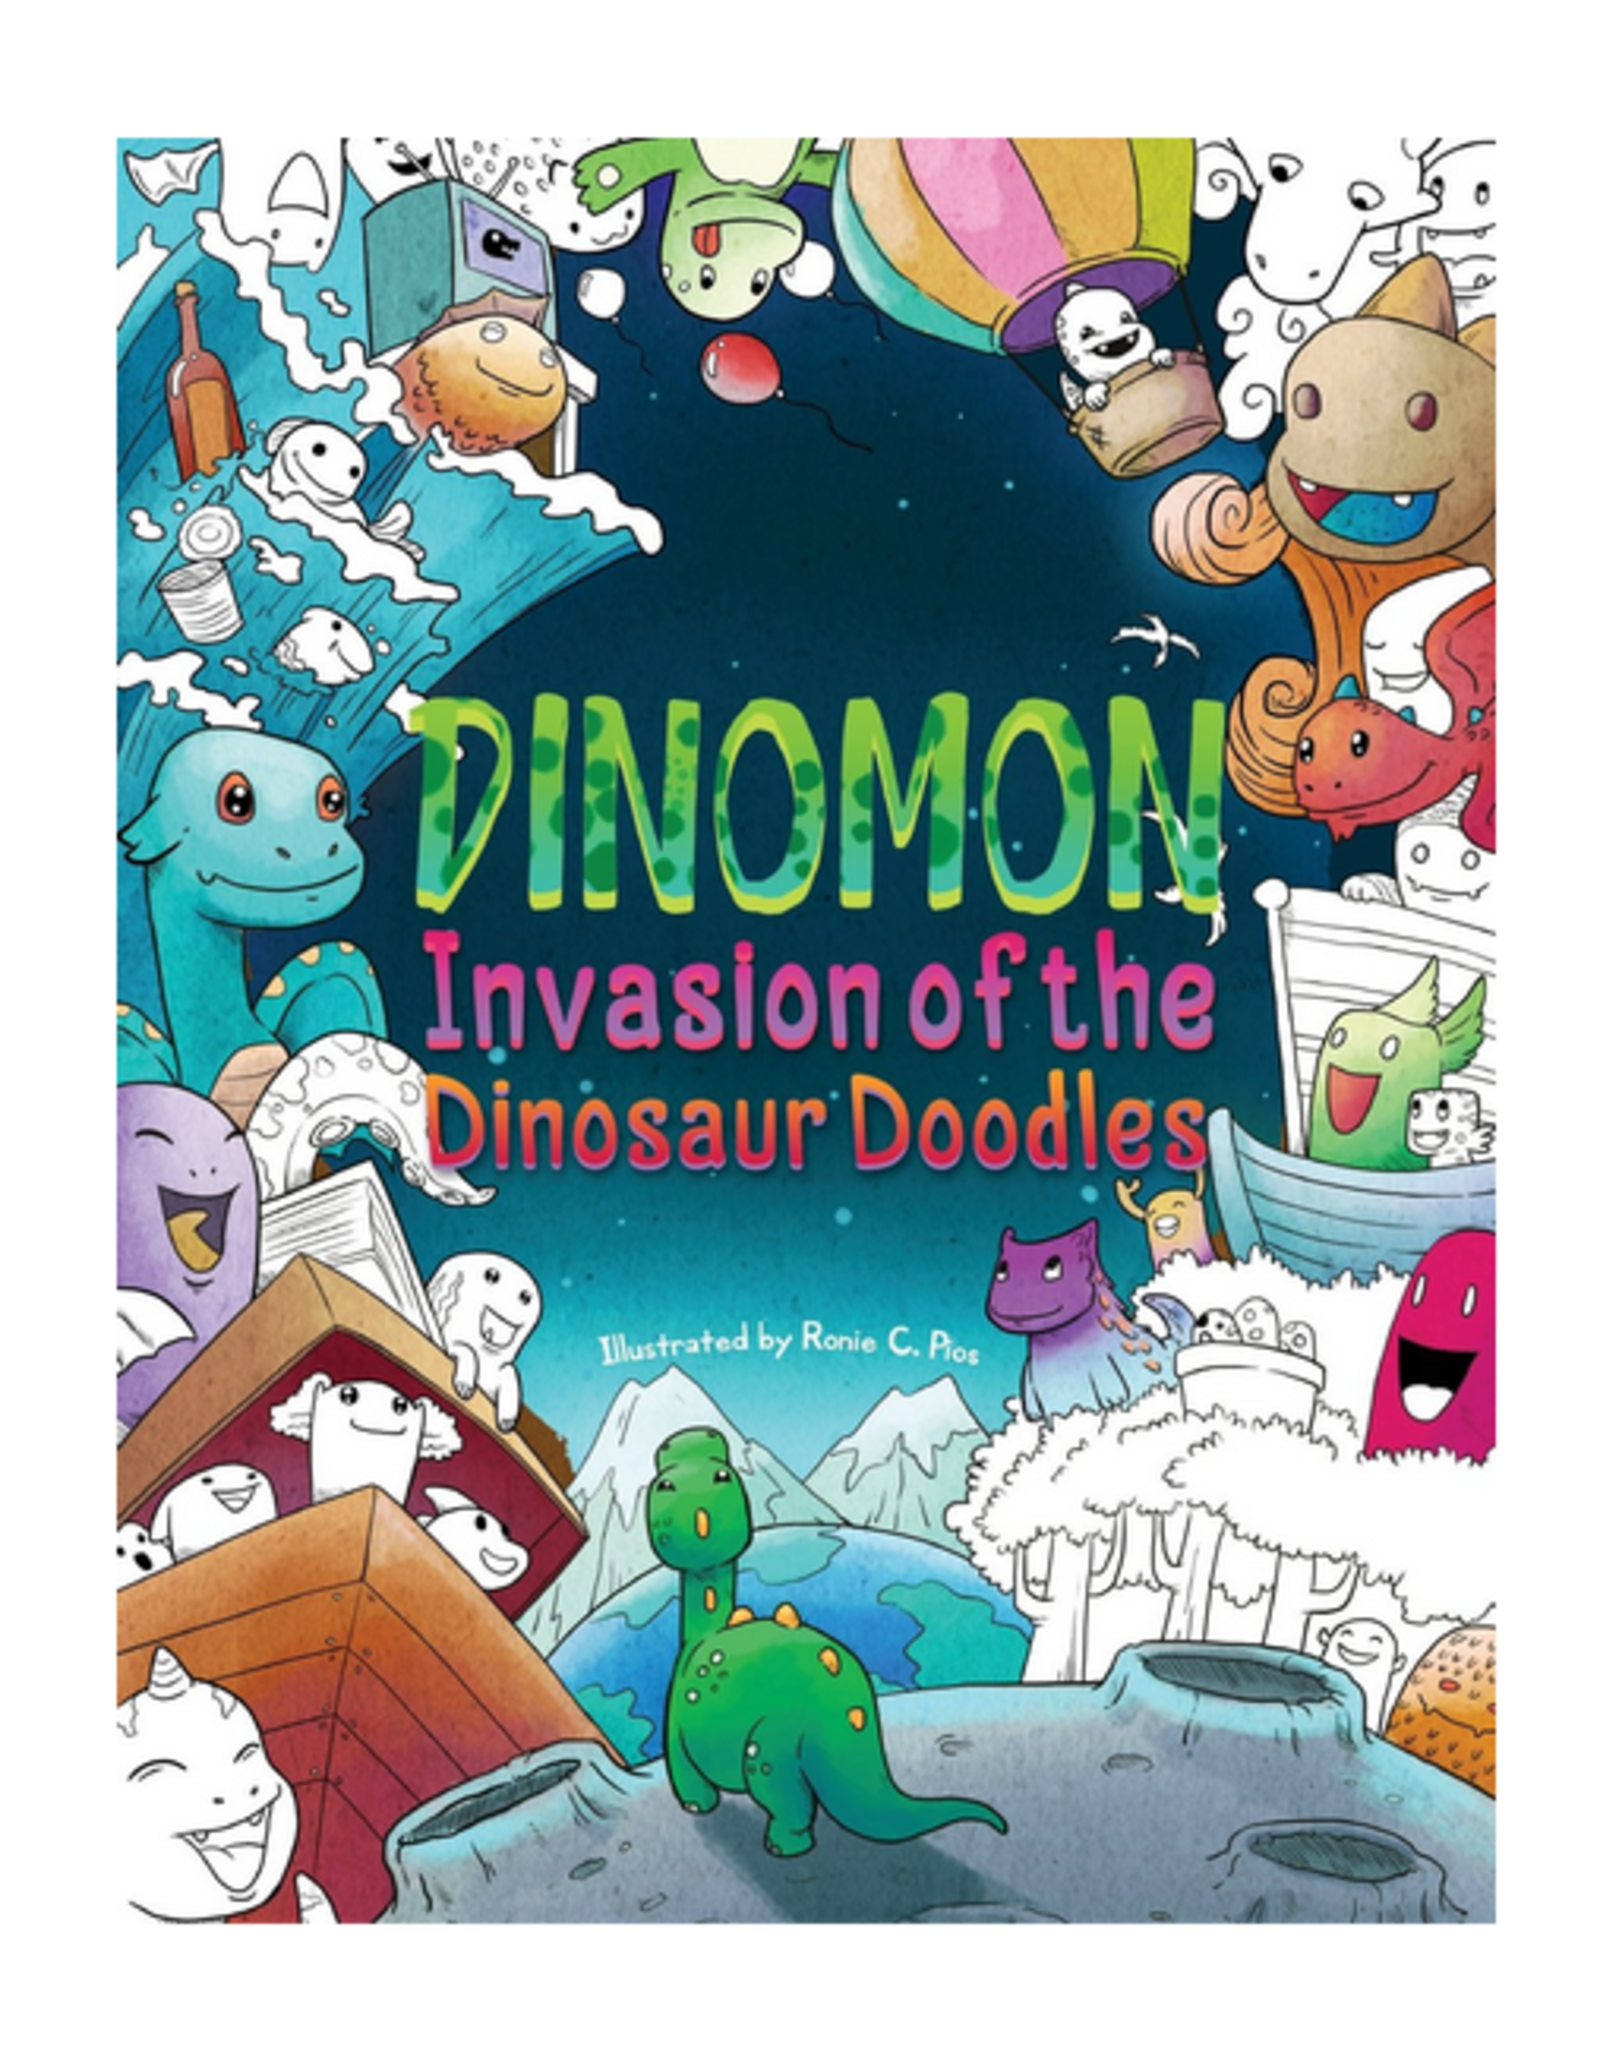 Julia Rivers Colouring Book, Dinomon - Invasion of the Dinosaur Doodles